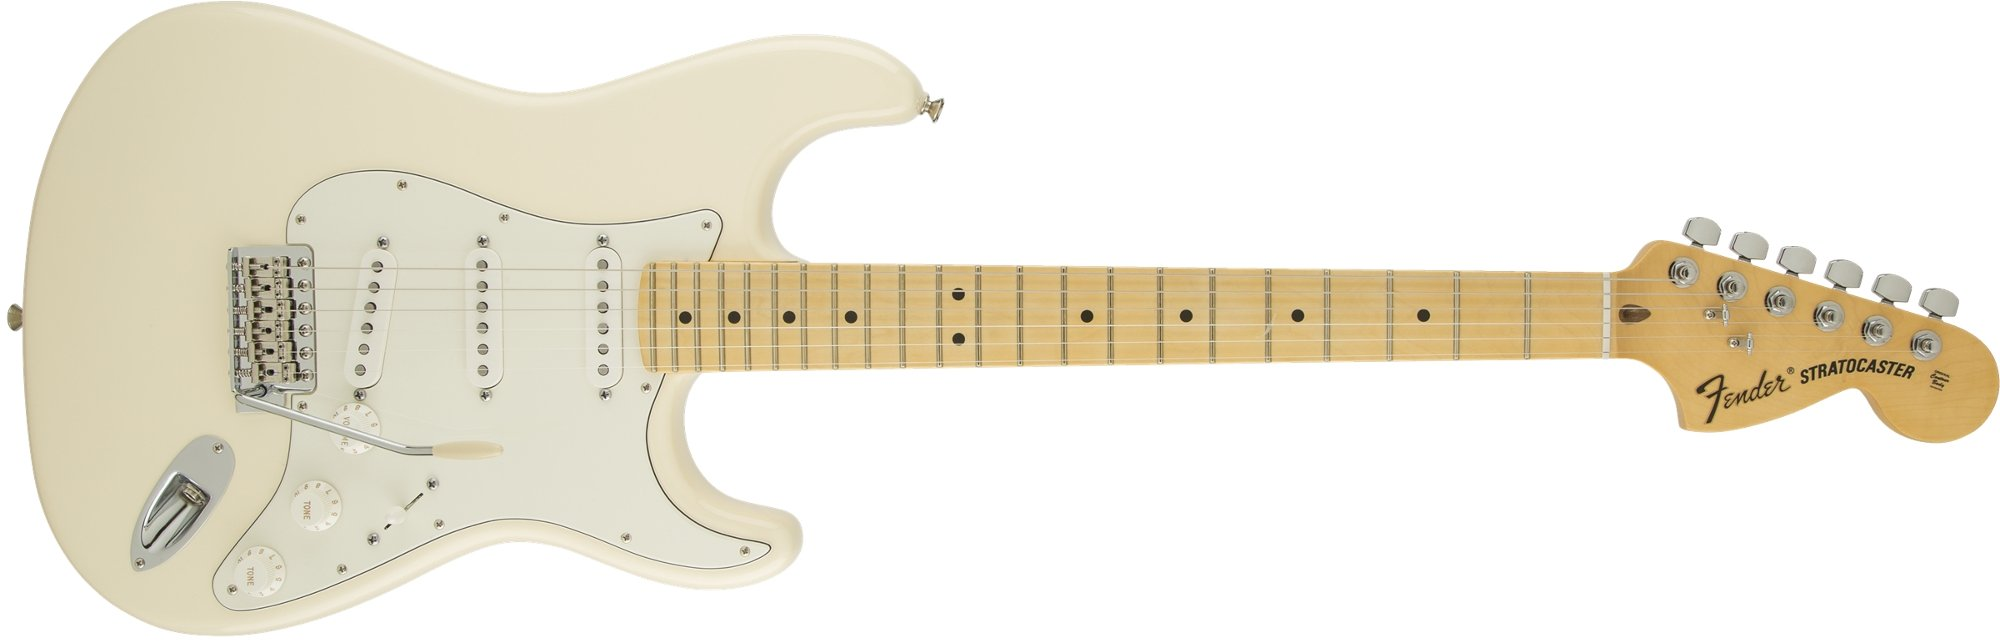 Electric Guitar with SSS Pickup Configuration in Olympic White with Maple Fingerboard